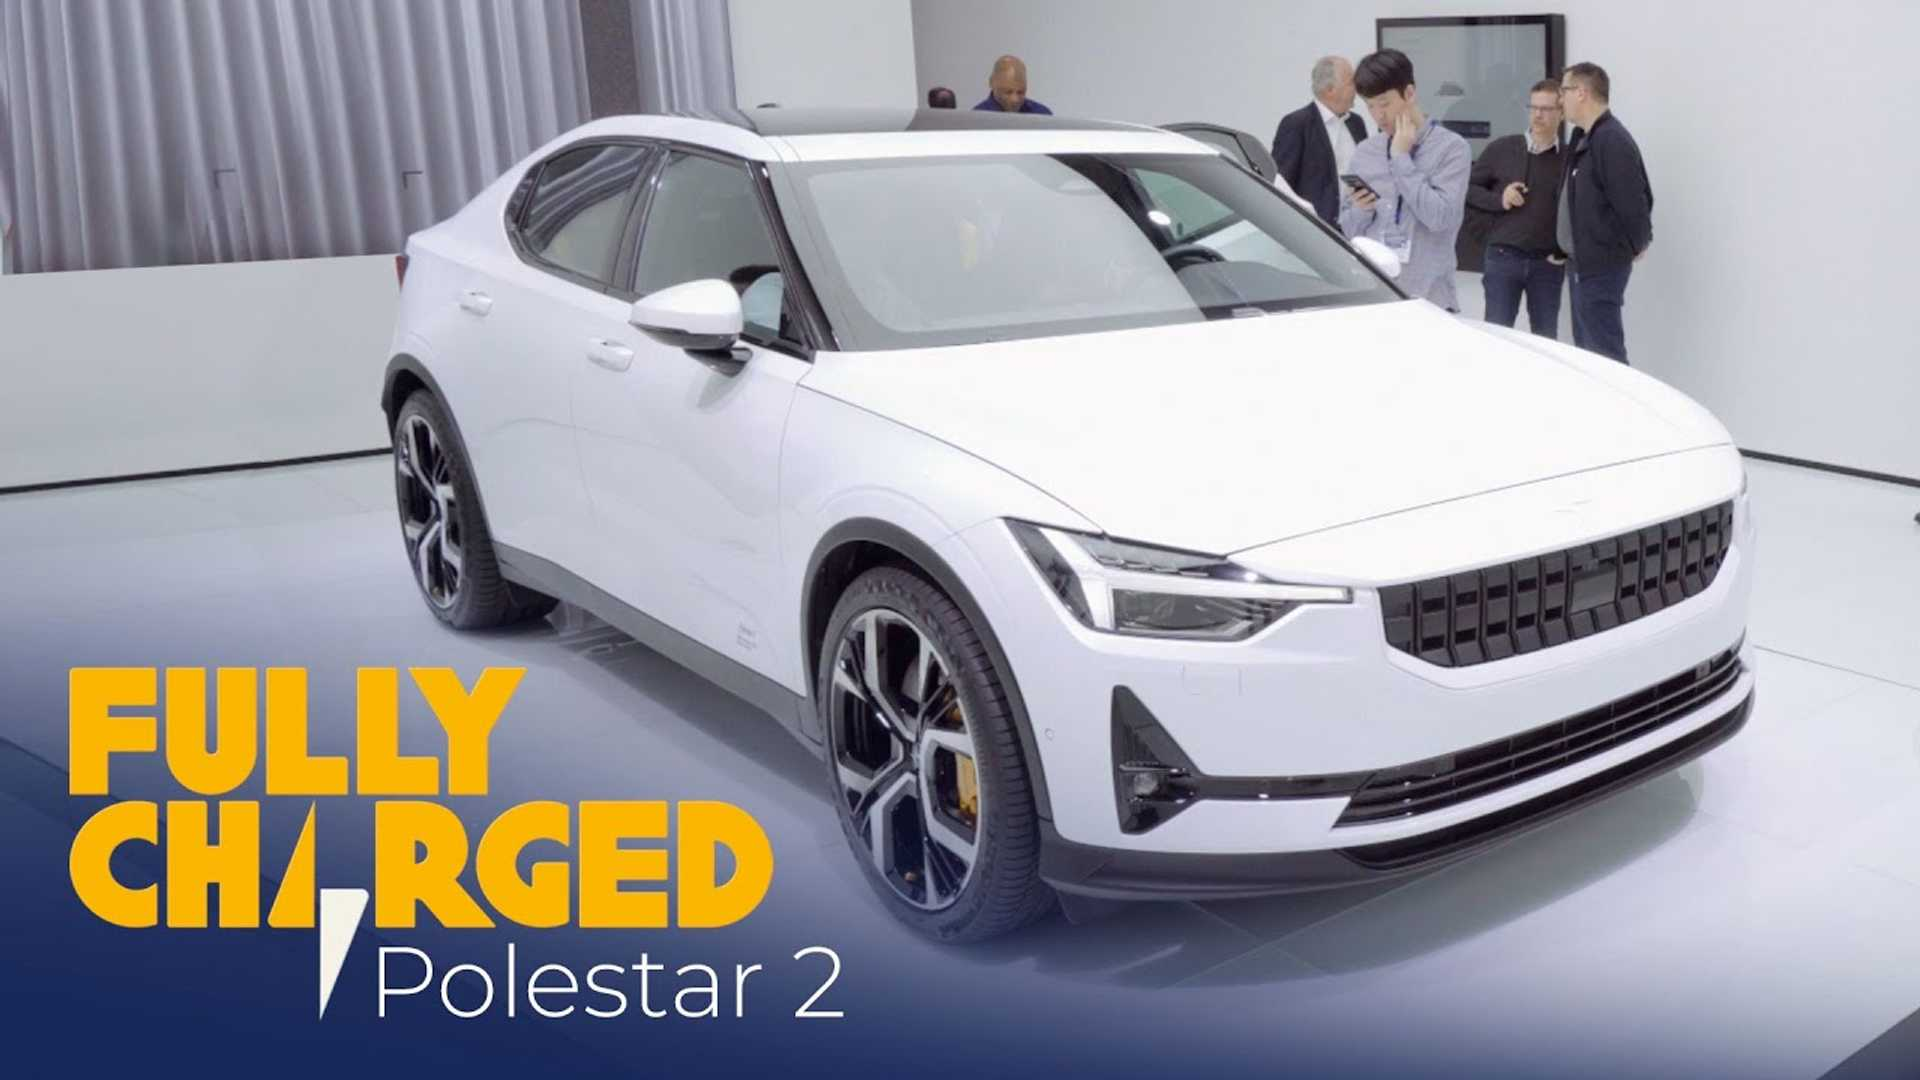 Polestar 2 In The Lens Of Fully Charged & Autogefühl: Videos